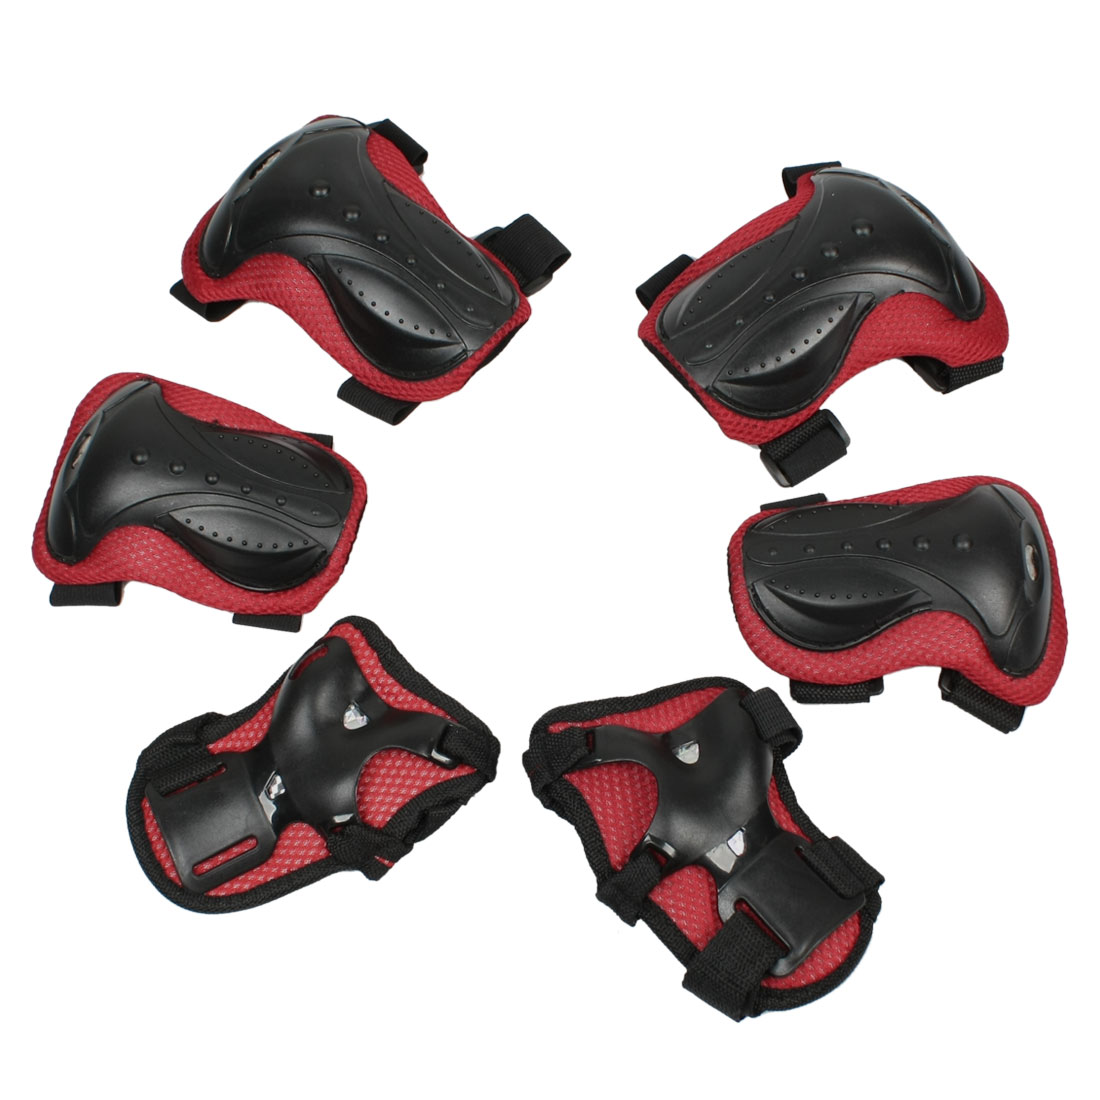 Set 6 in 1 Skating Palm Elbow Knee Support Pad Protector Red Black for Children